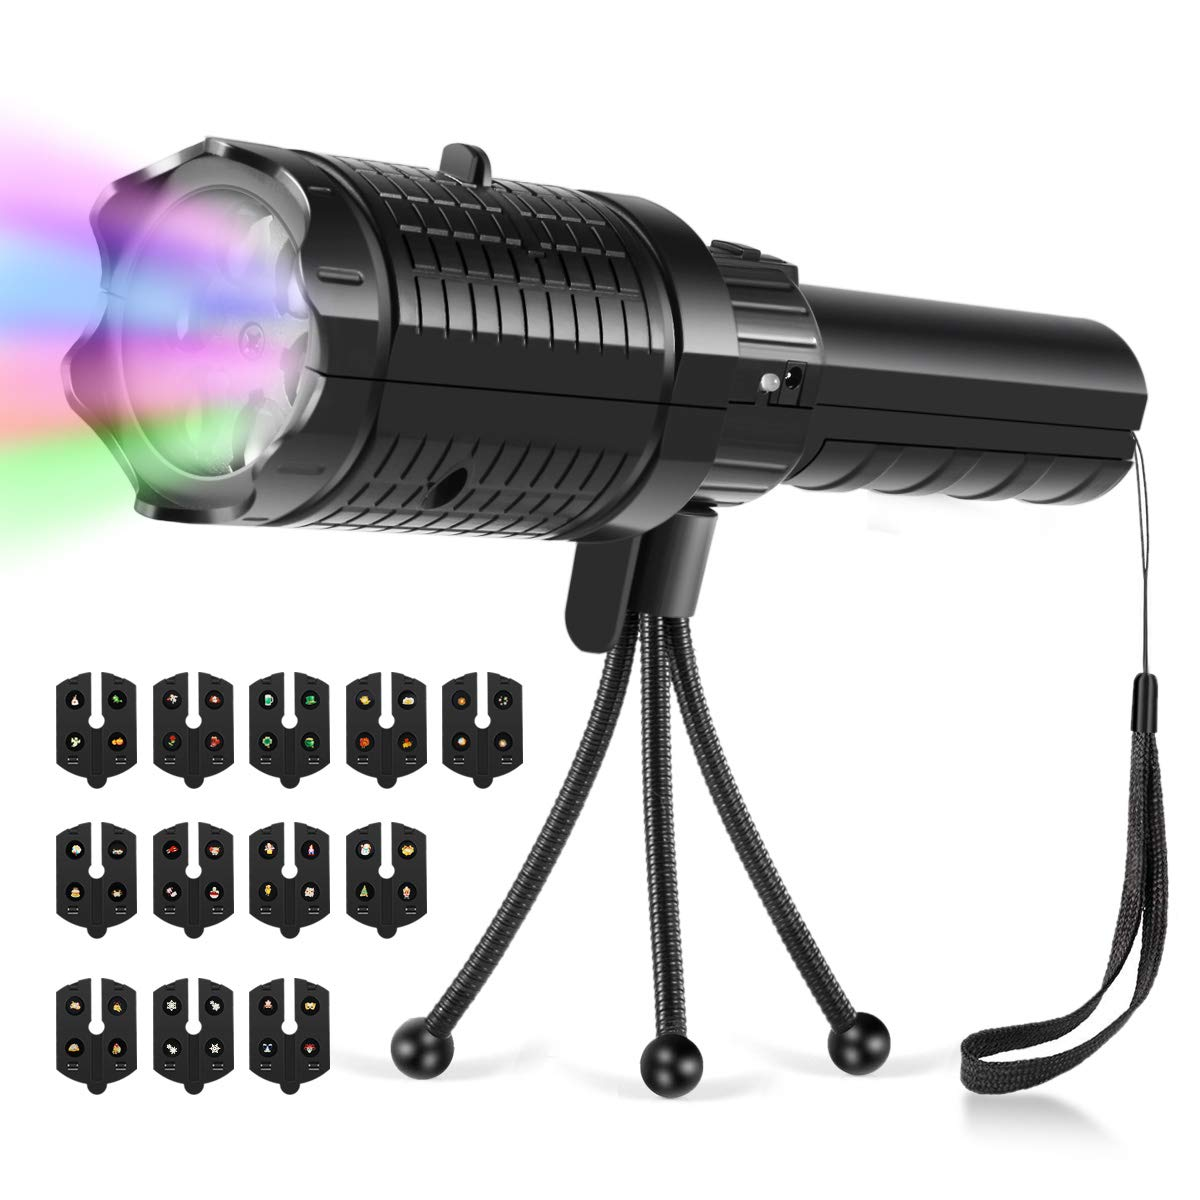 LED Projector Flashlight, Wellcows Portable Projector Battery USB Charging 2 in 1 Party Decorative Lights and Handheld Flashlight with Tripod Multiple Scene Slides for Party, Light Show, Birthday